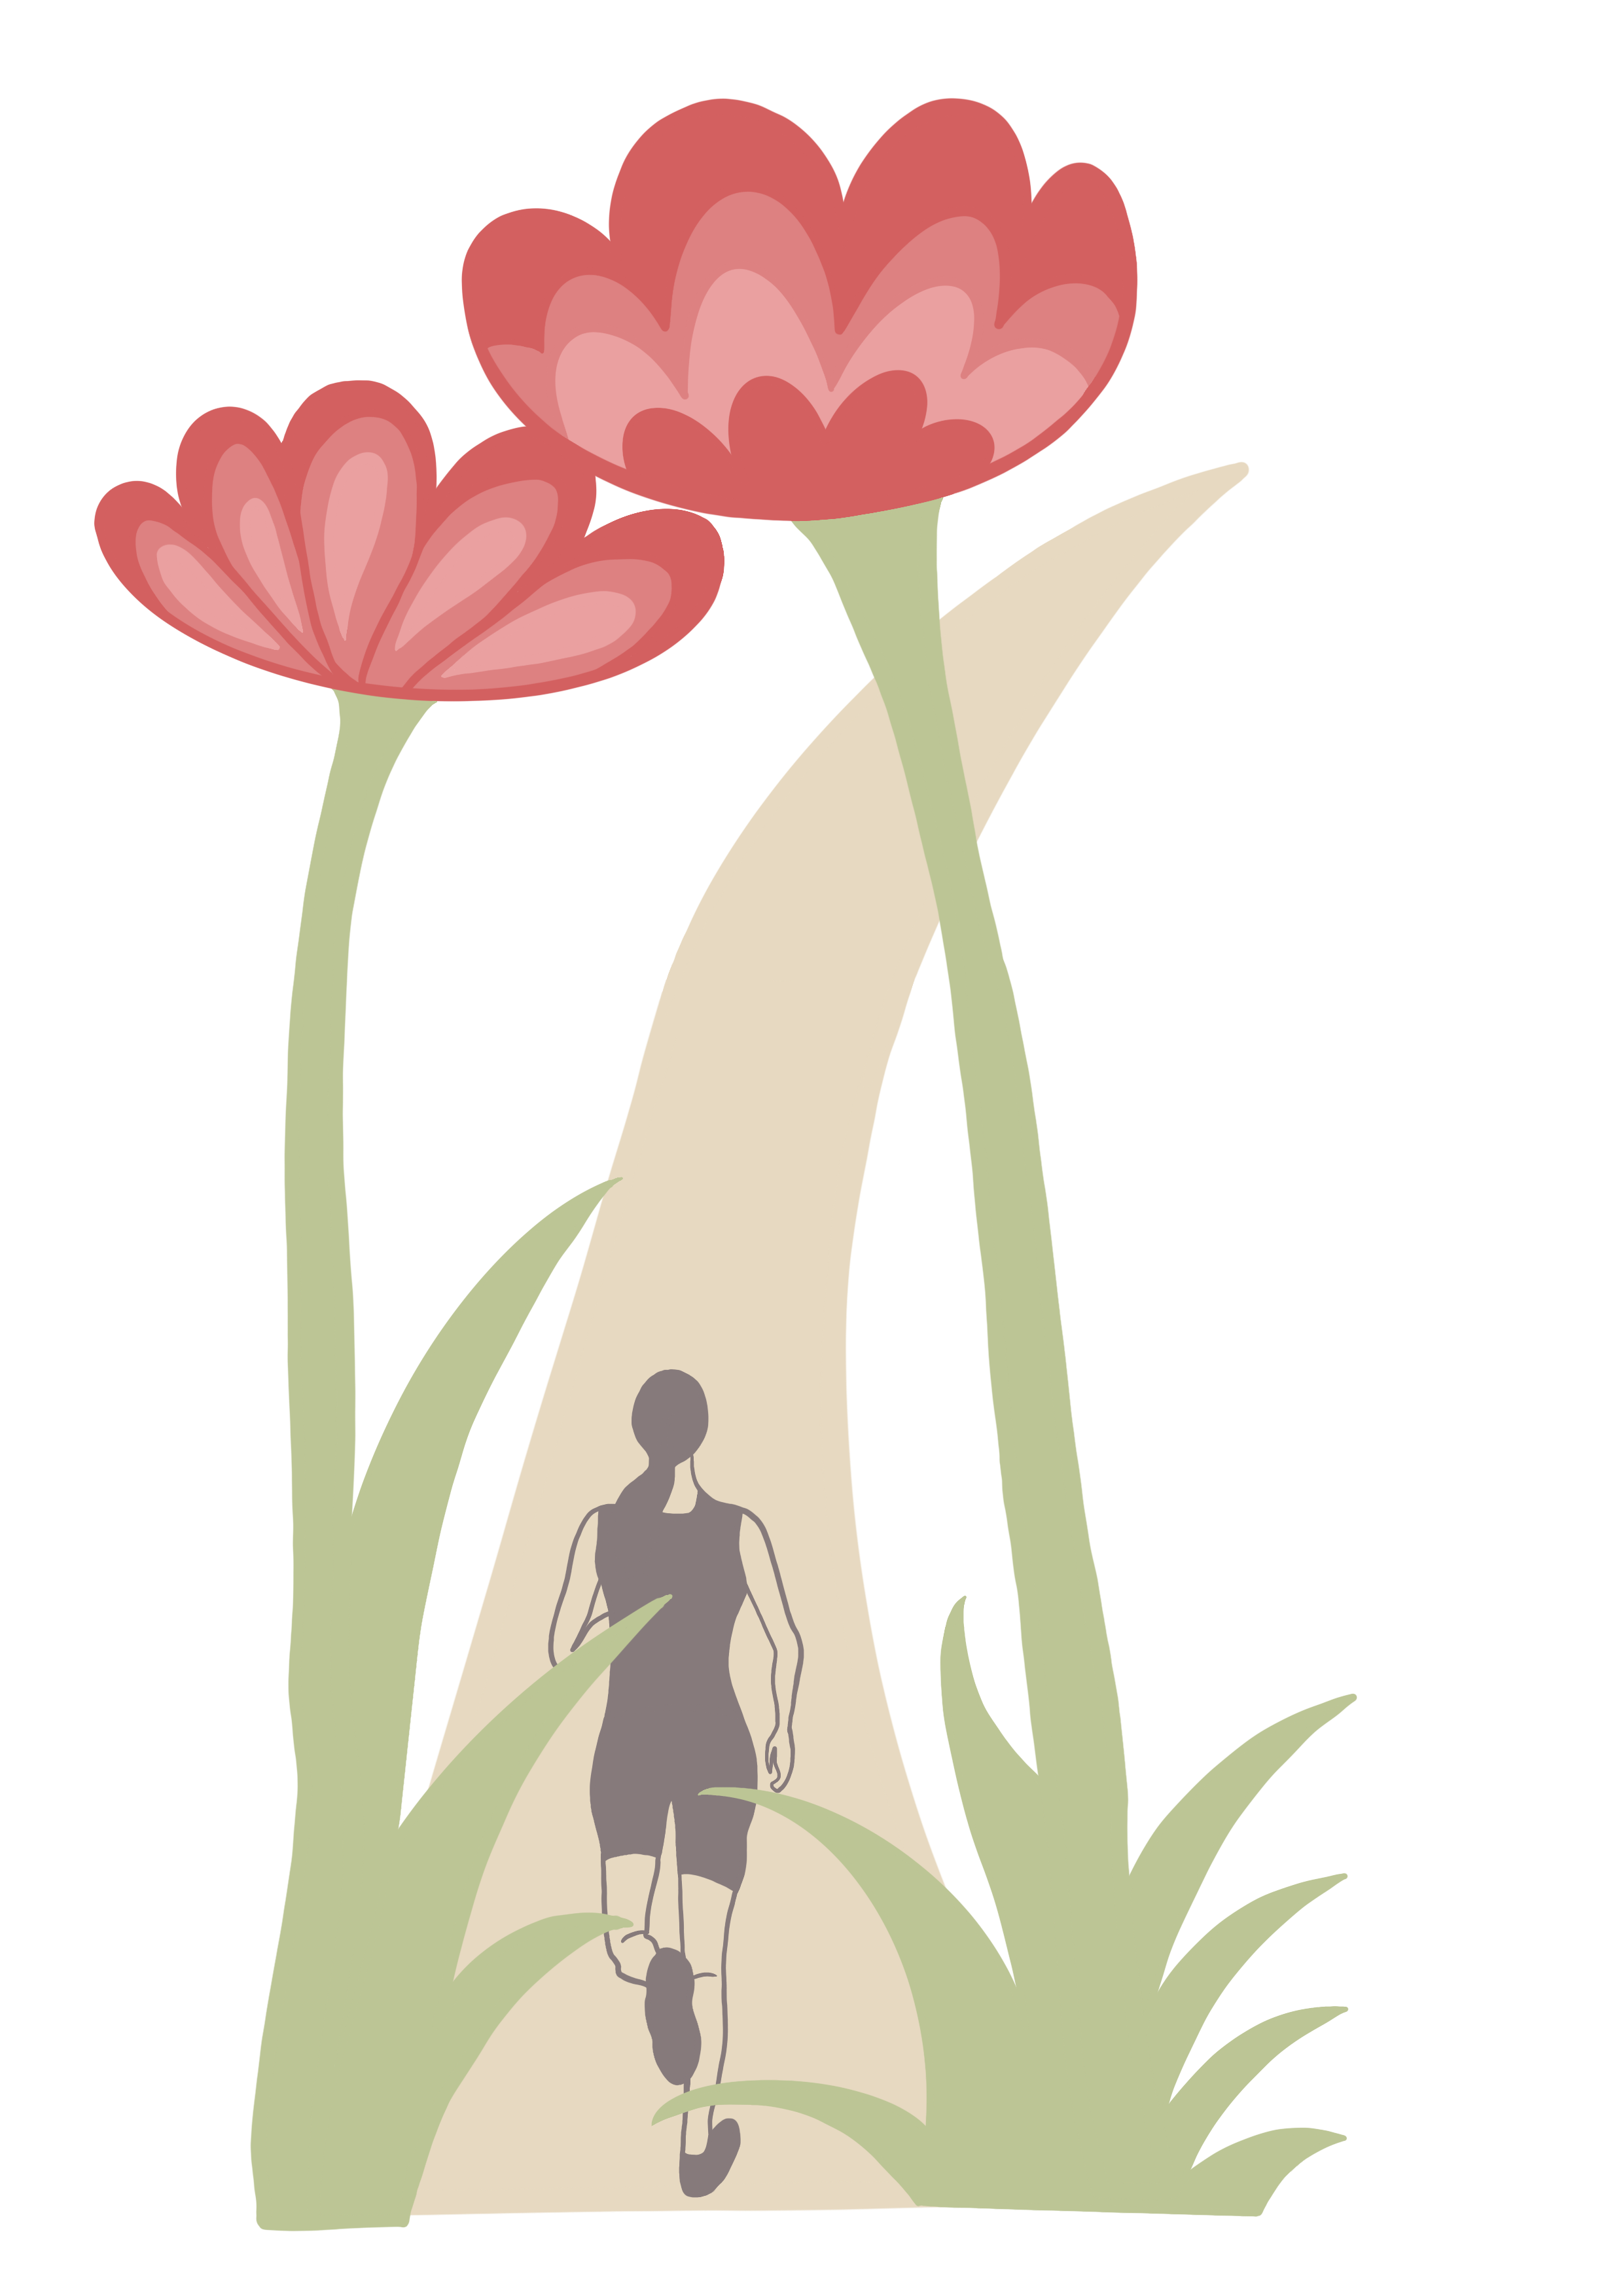 an illustration of a runner on a path bordered by large pink flowers